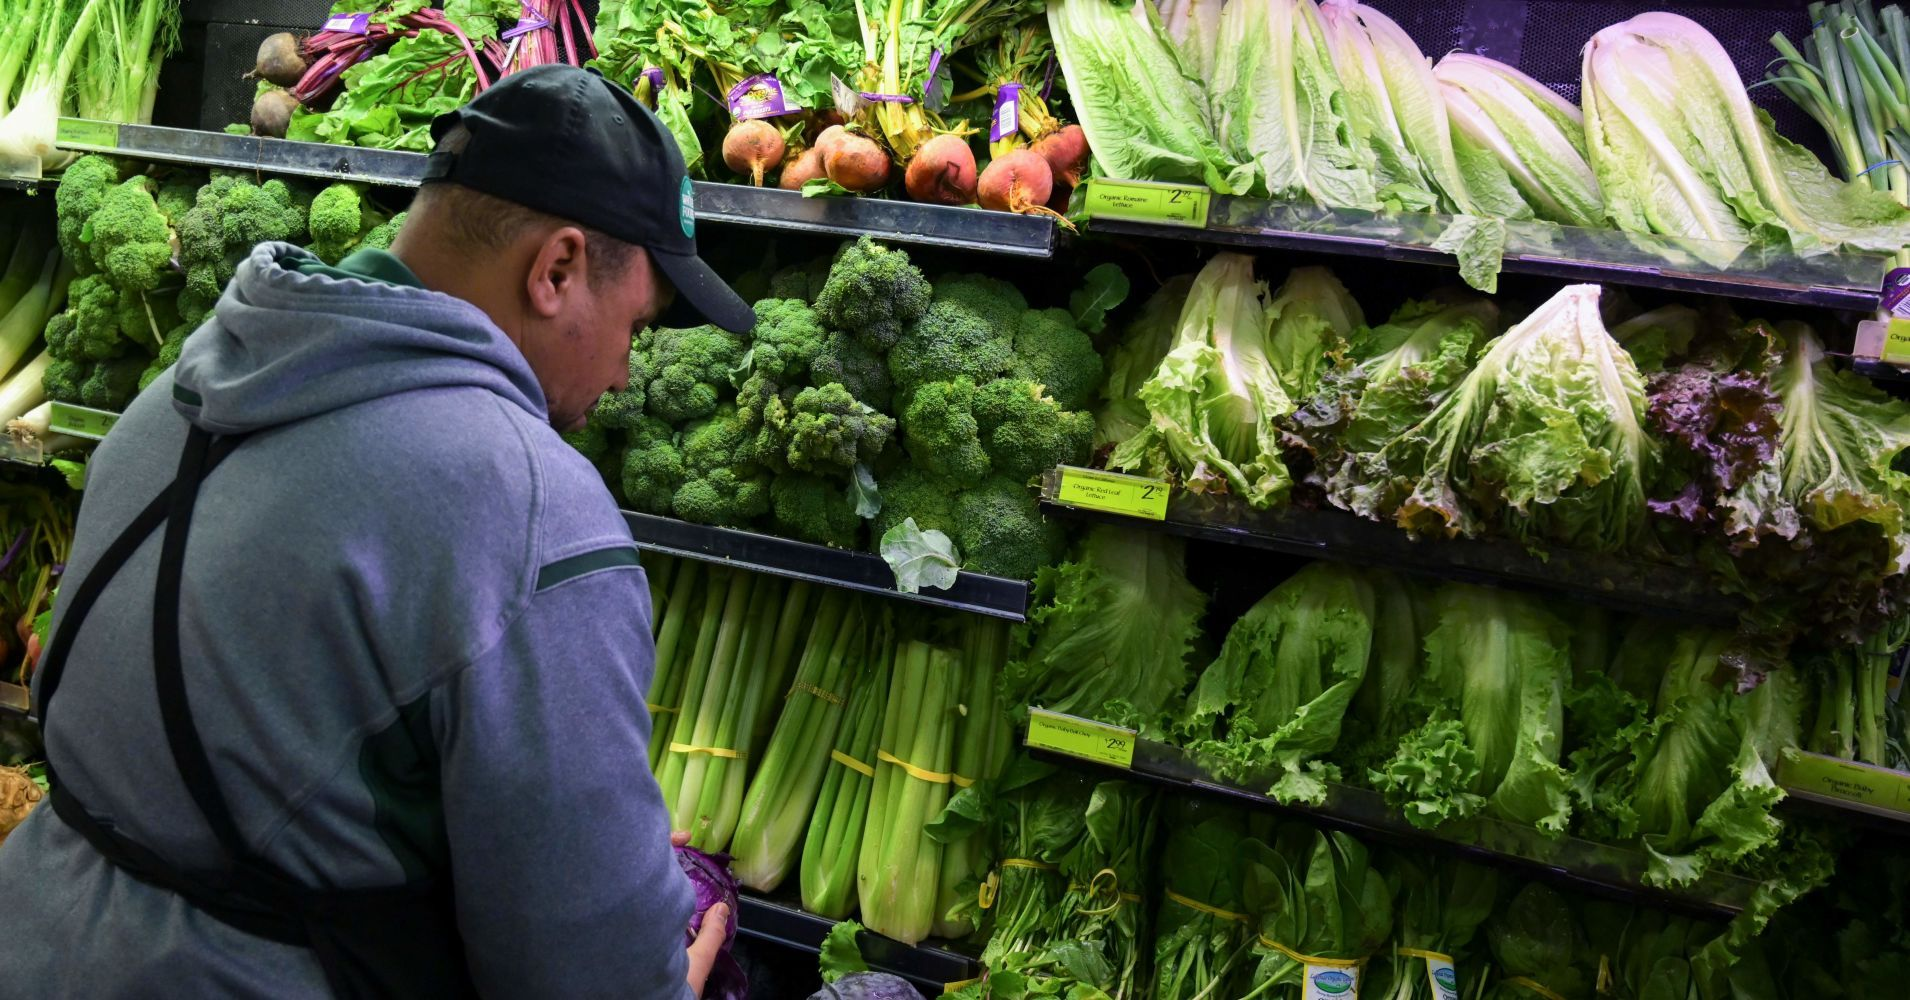 Government shutdown slows FDA inspections, food safety